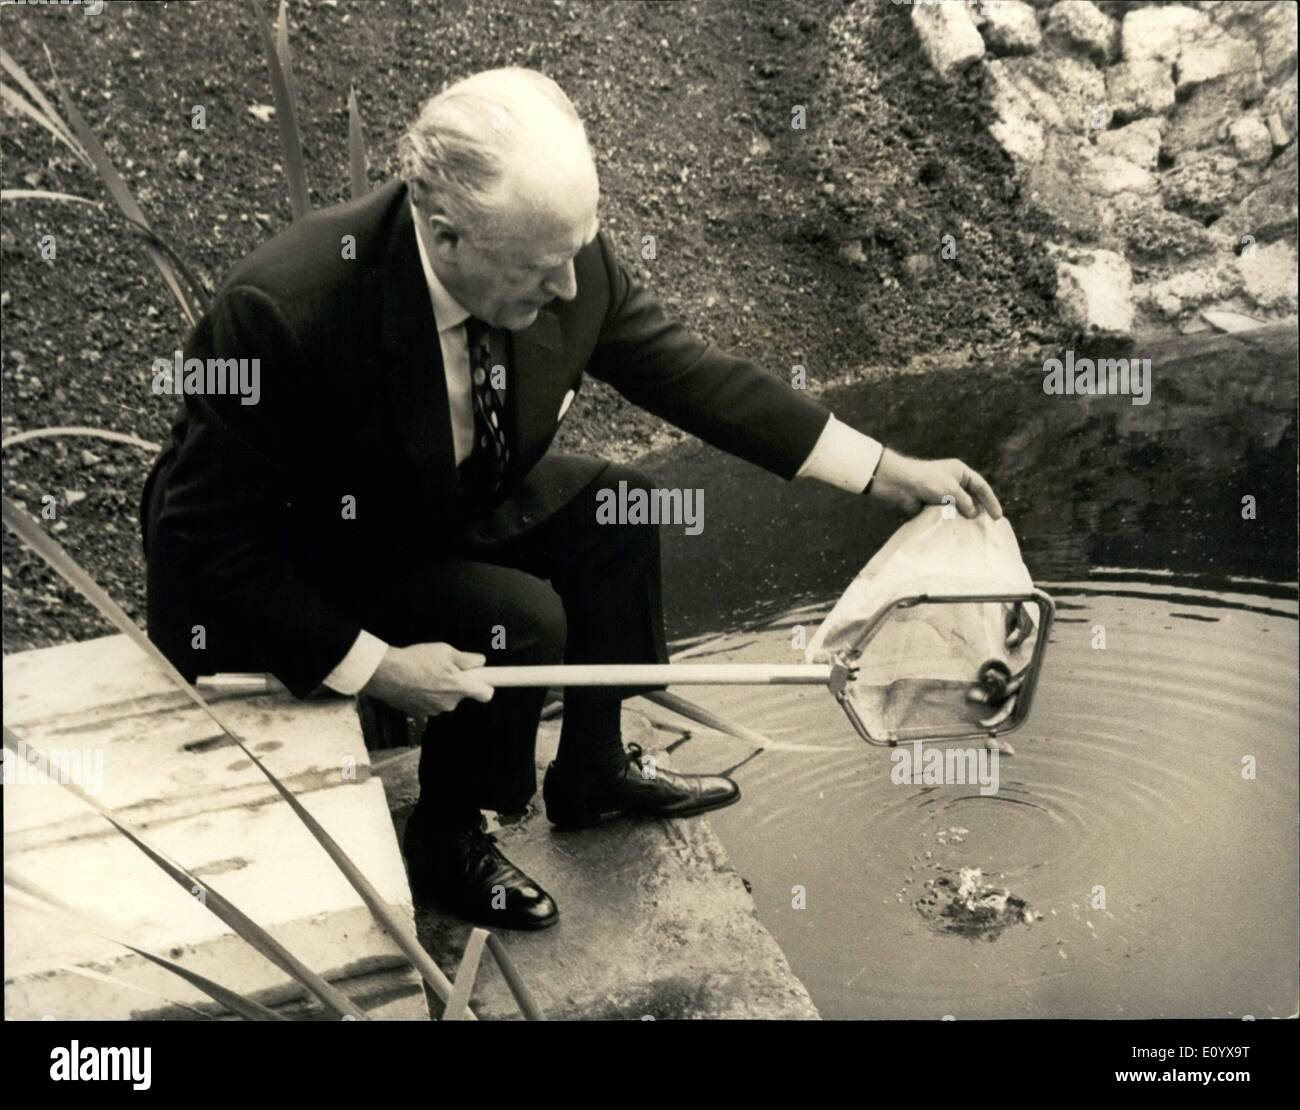 Sep. 09, 1971 - GLC Leader Opens Fish Experimental Unit: Sir Desmond Plummer, Leader of the greater London Council, today opened the GLC's Fish Experimental Unit at Deephams Sewage treatment Works, Edmonton. Sir Desmond placed the first fish into the unit. this unit will enable the study of the effluent as a food source for fish but more important will be an additional test of the purity of the effluent. it will also allow the GLC to test the build up of pesticides and mercury in living organisms, the fish as well as their food chain - Stock Image